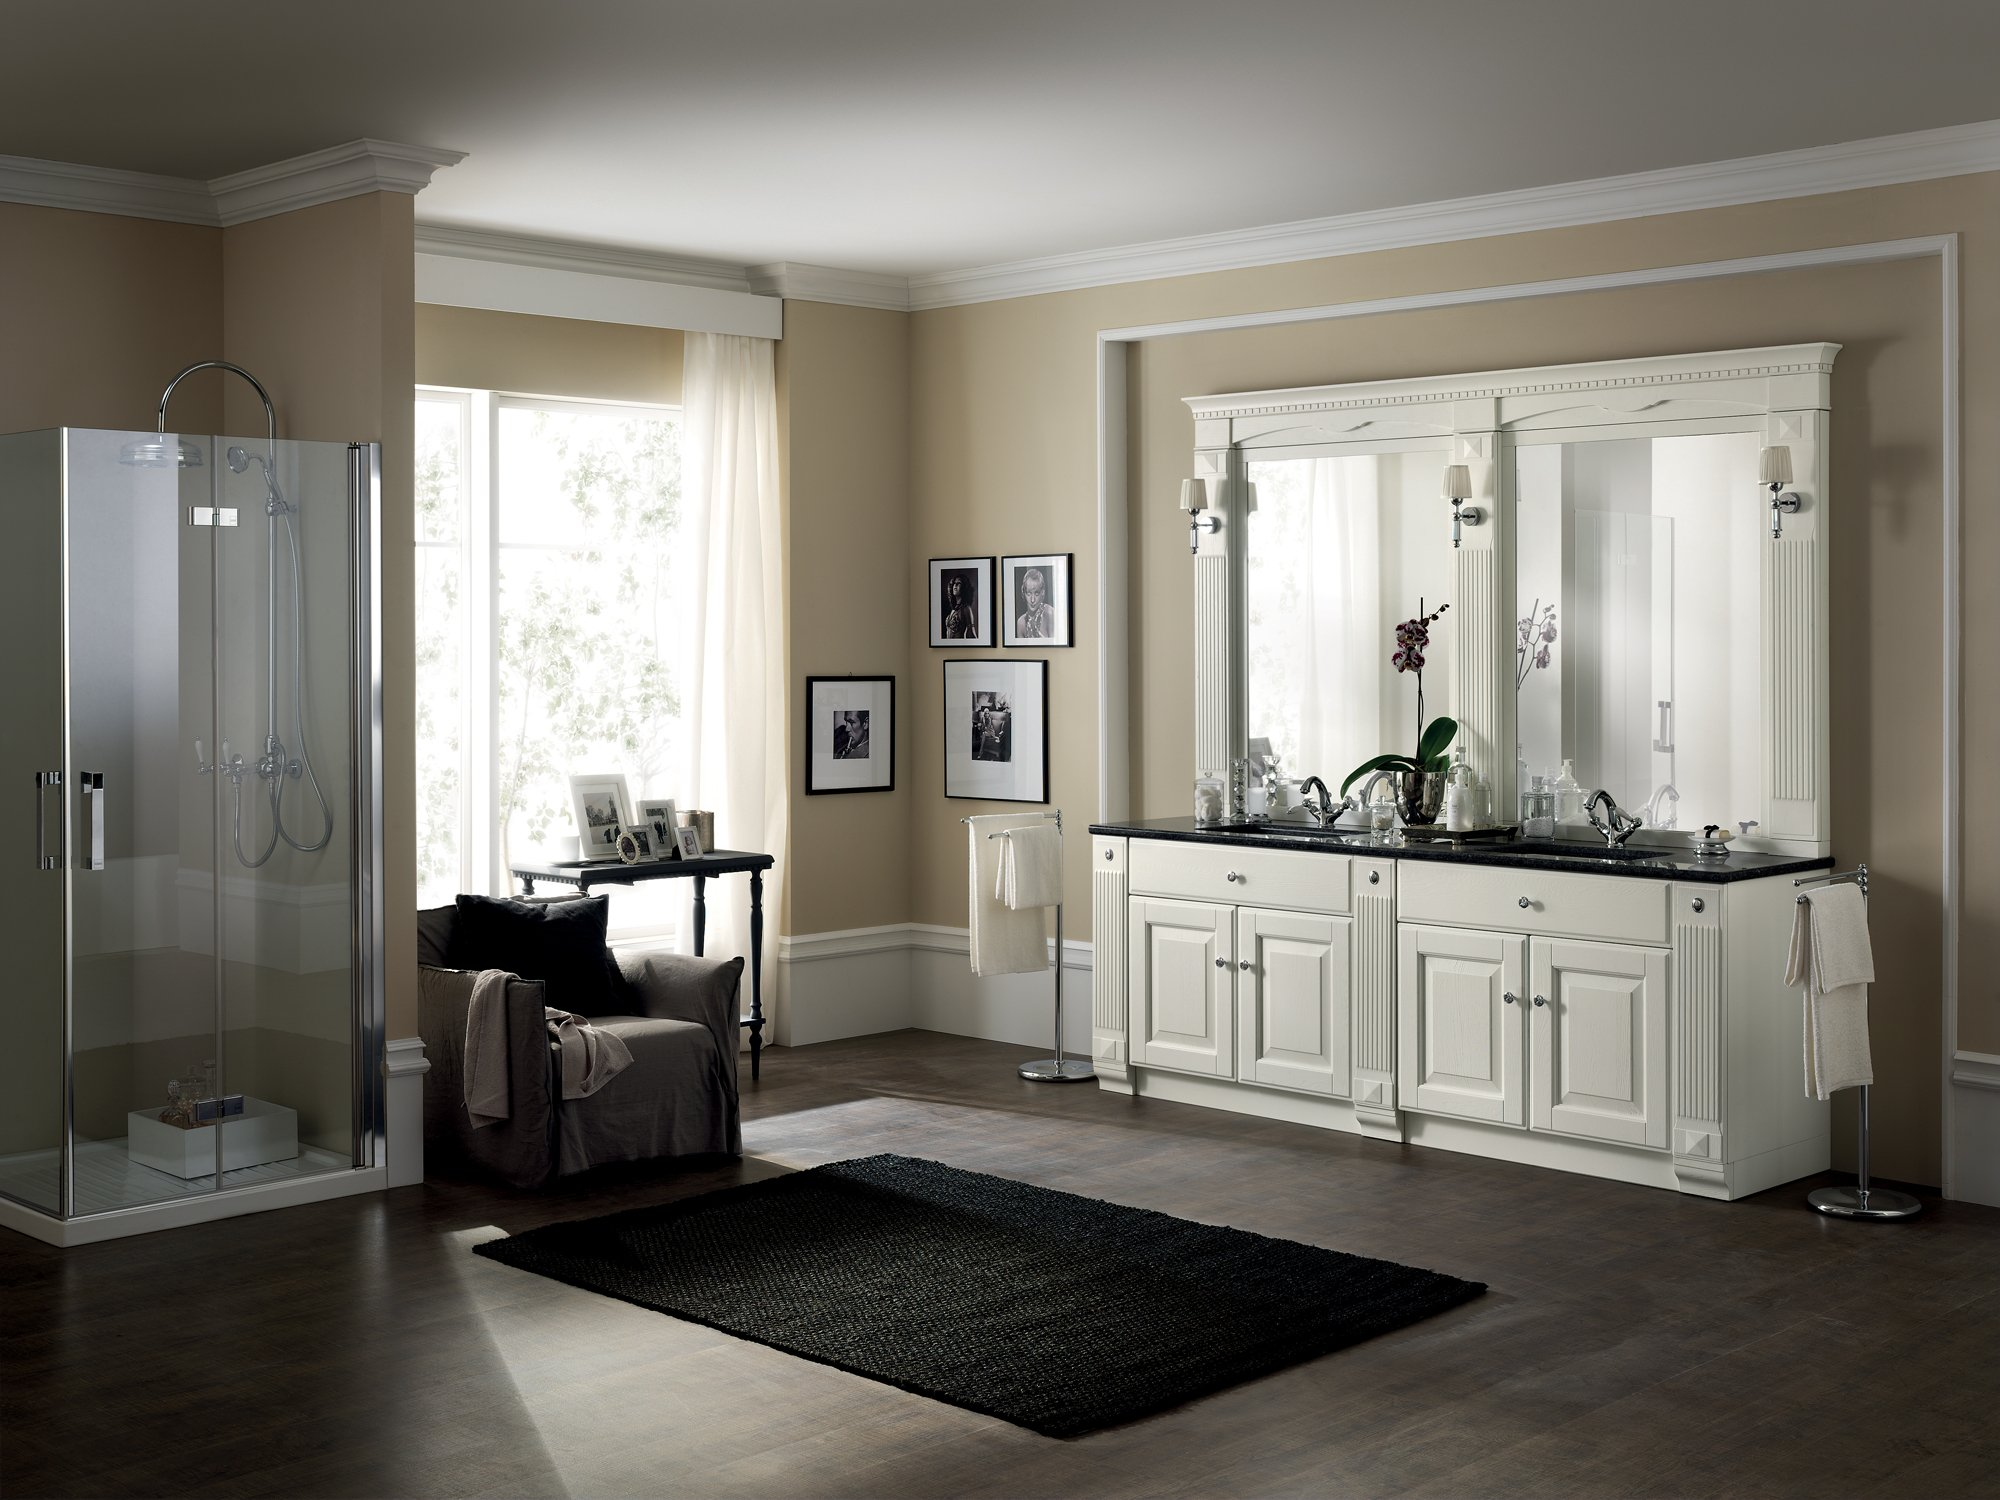 Arredo bagno completo baltimora by scavolini bathrooms - Bagno foto design ...